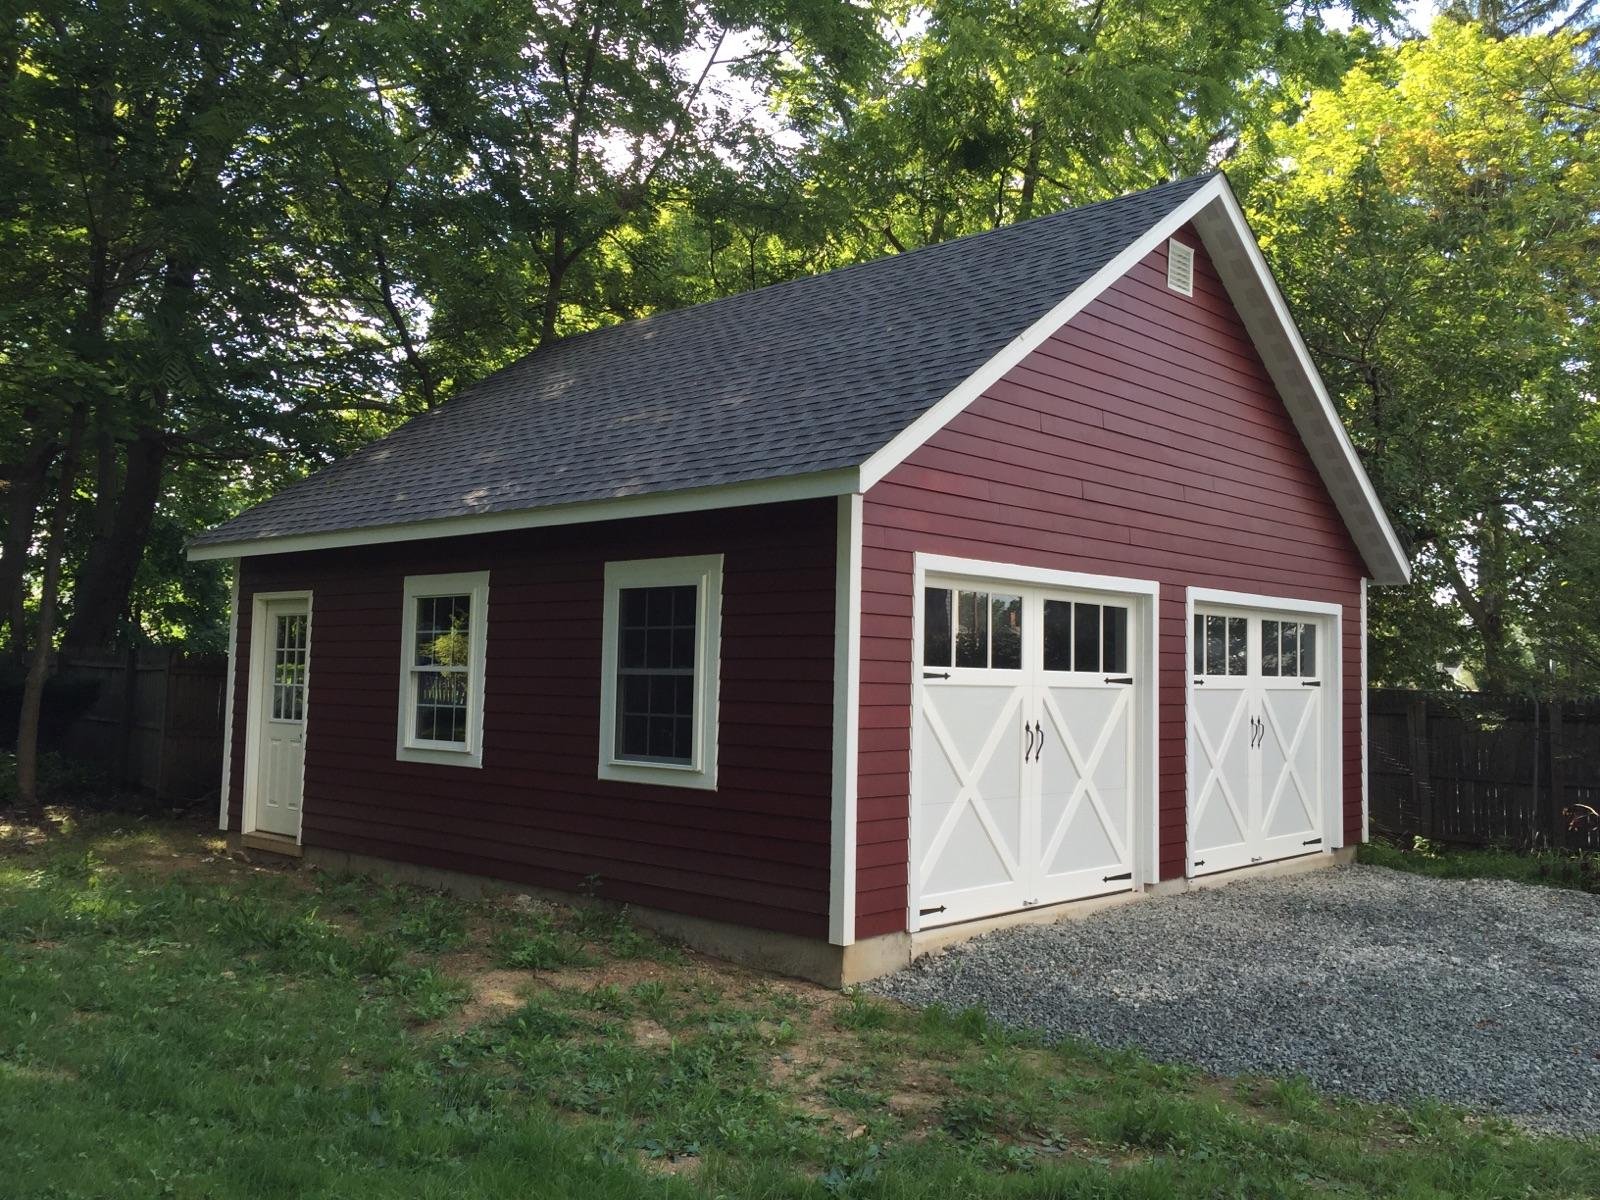 prefabricated pa single garages frame garage structures a amish backyard in sheds